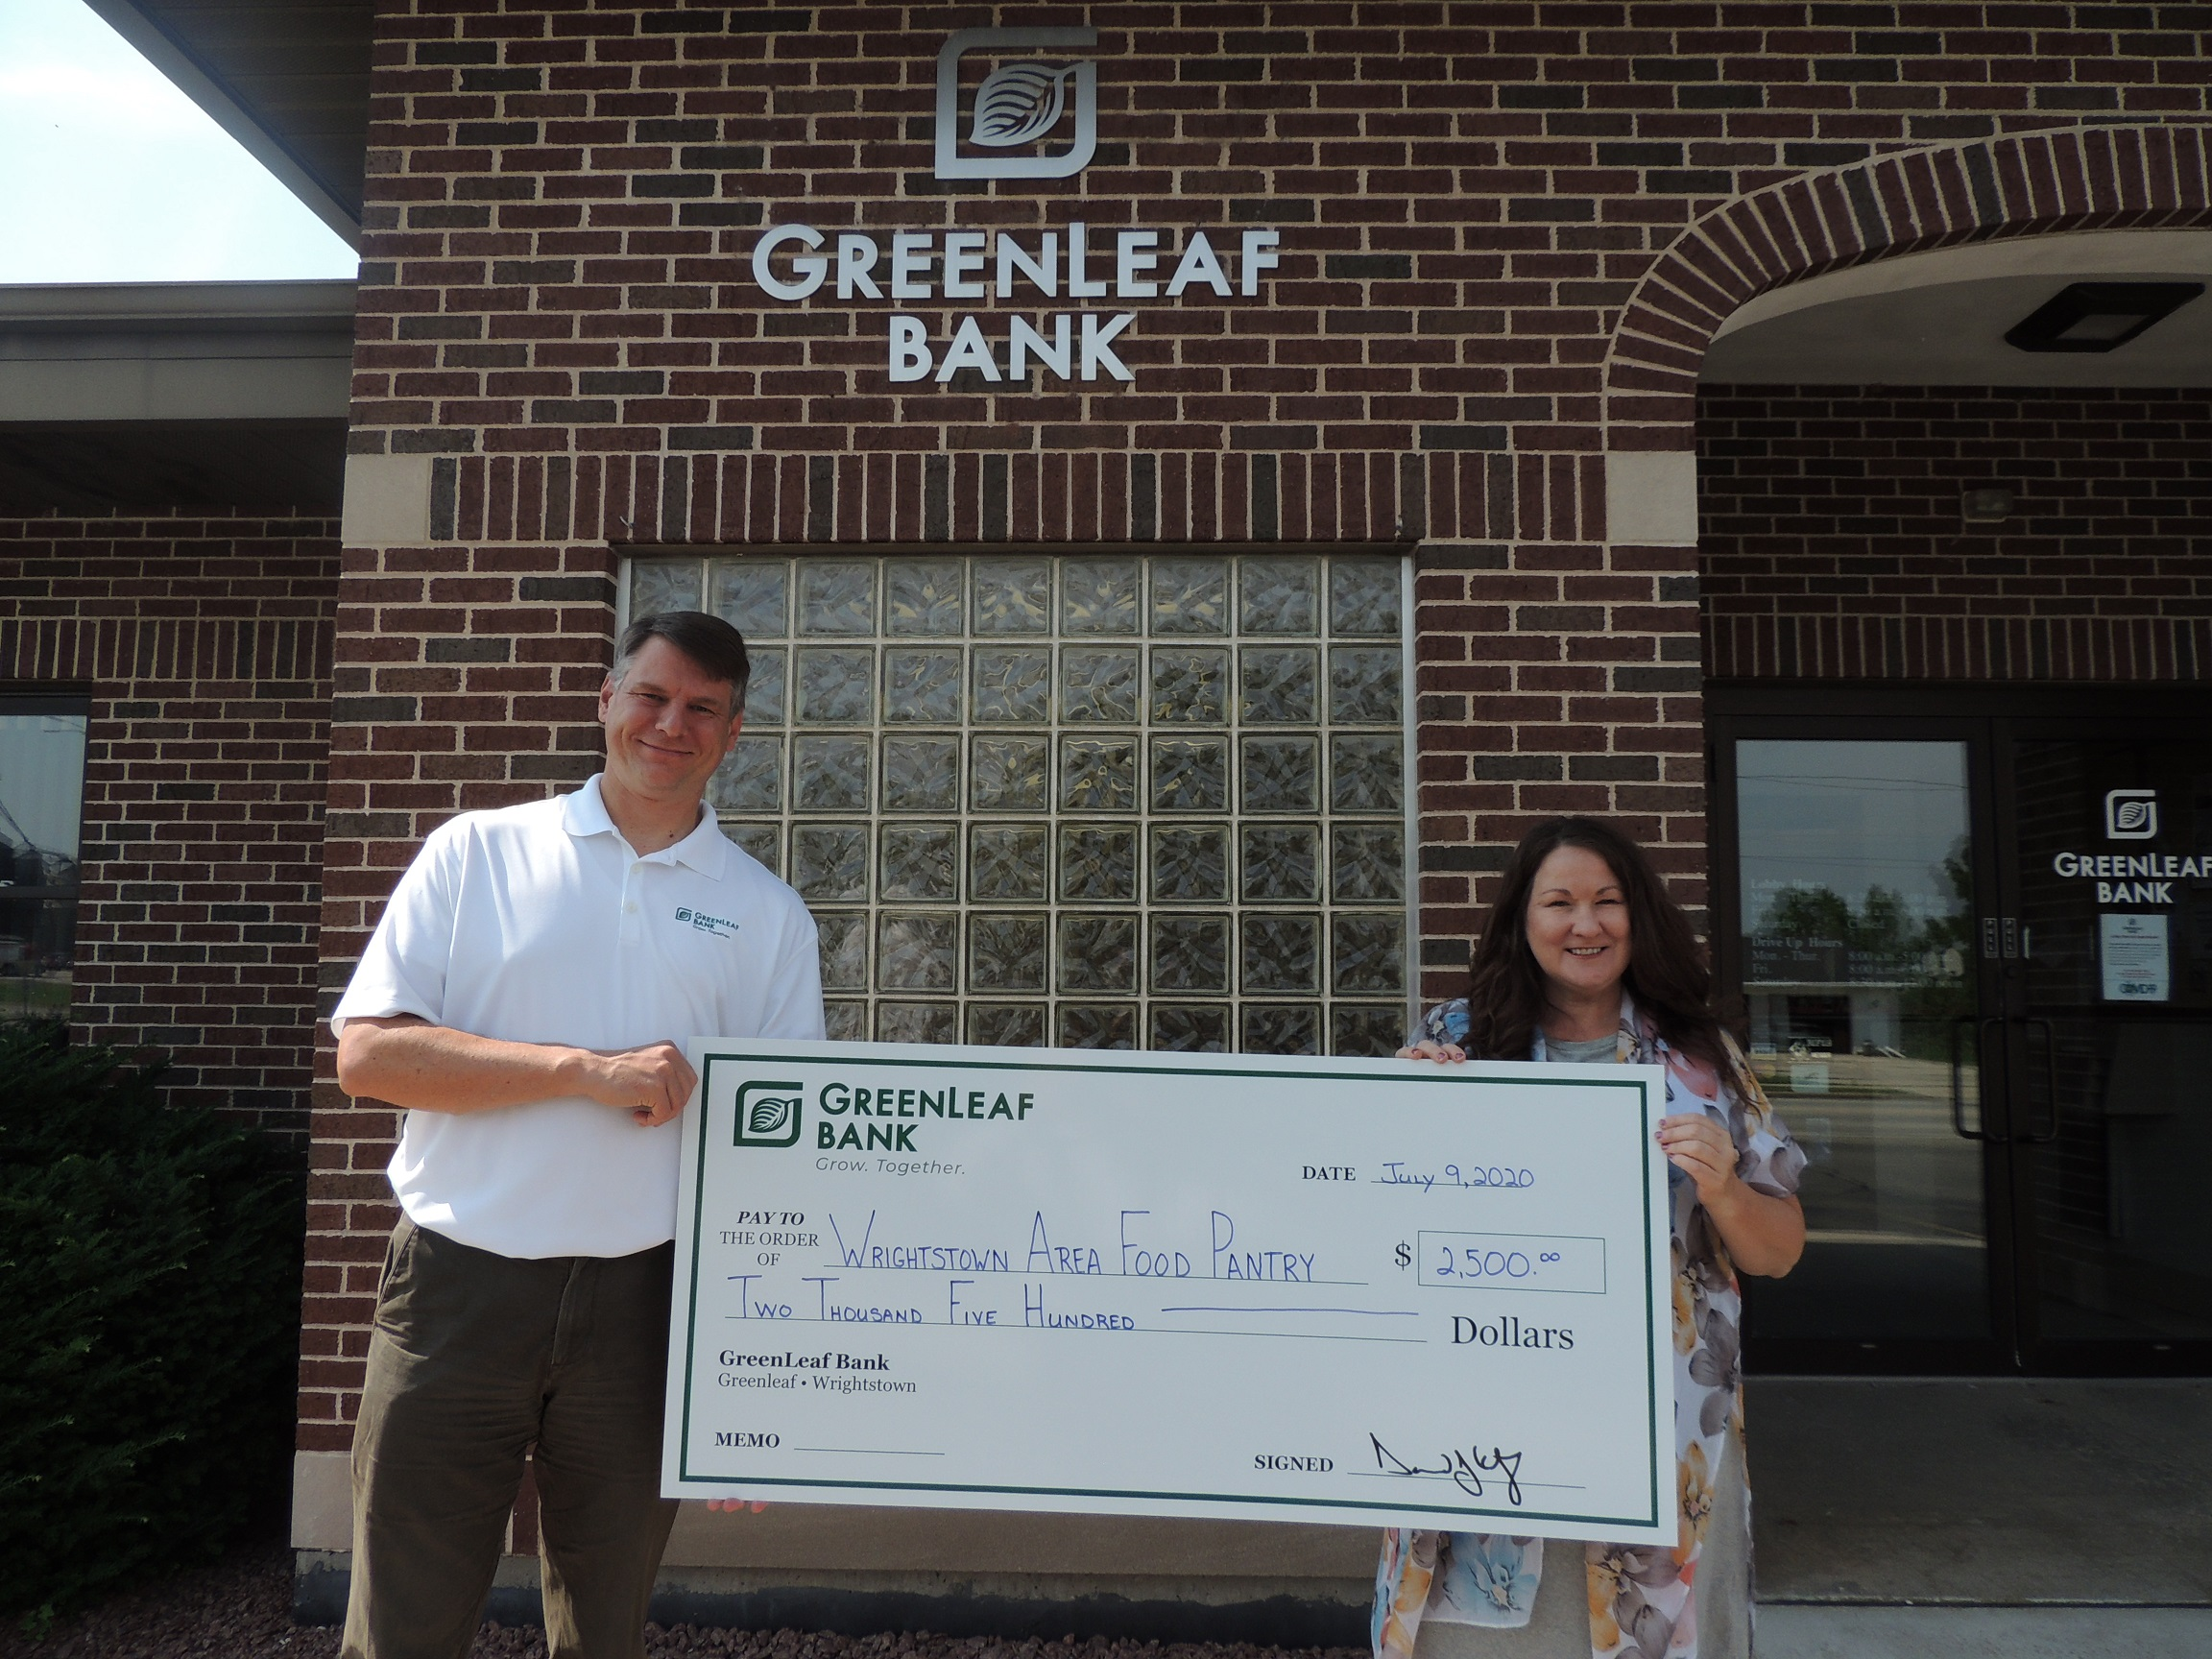 GreenLeaf Bank presents check to the Wrightstown Area Food Pantry